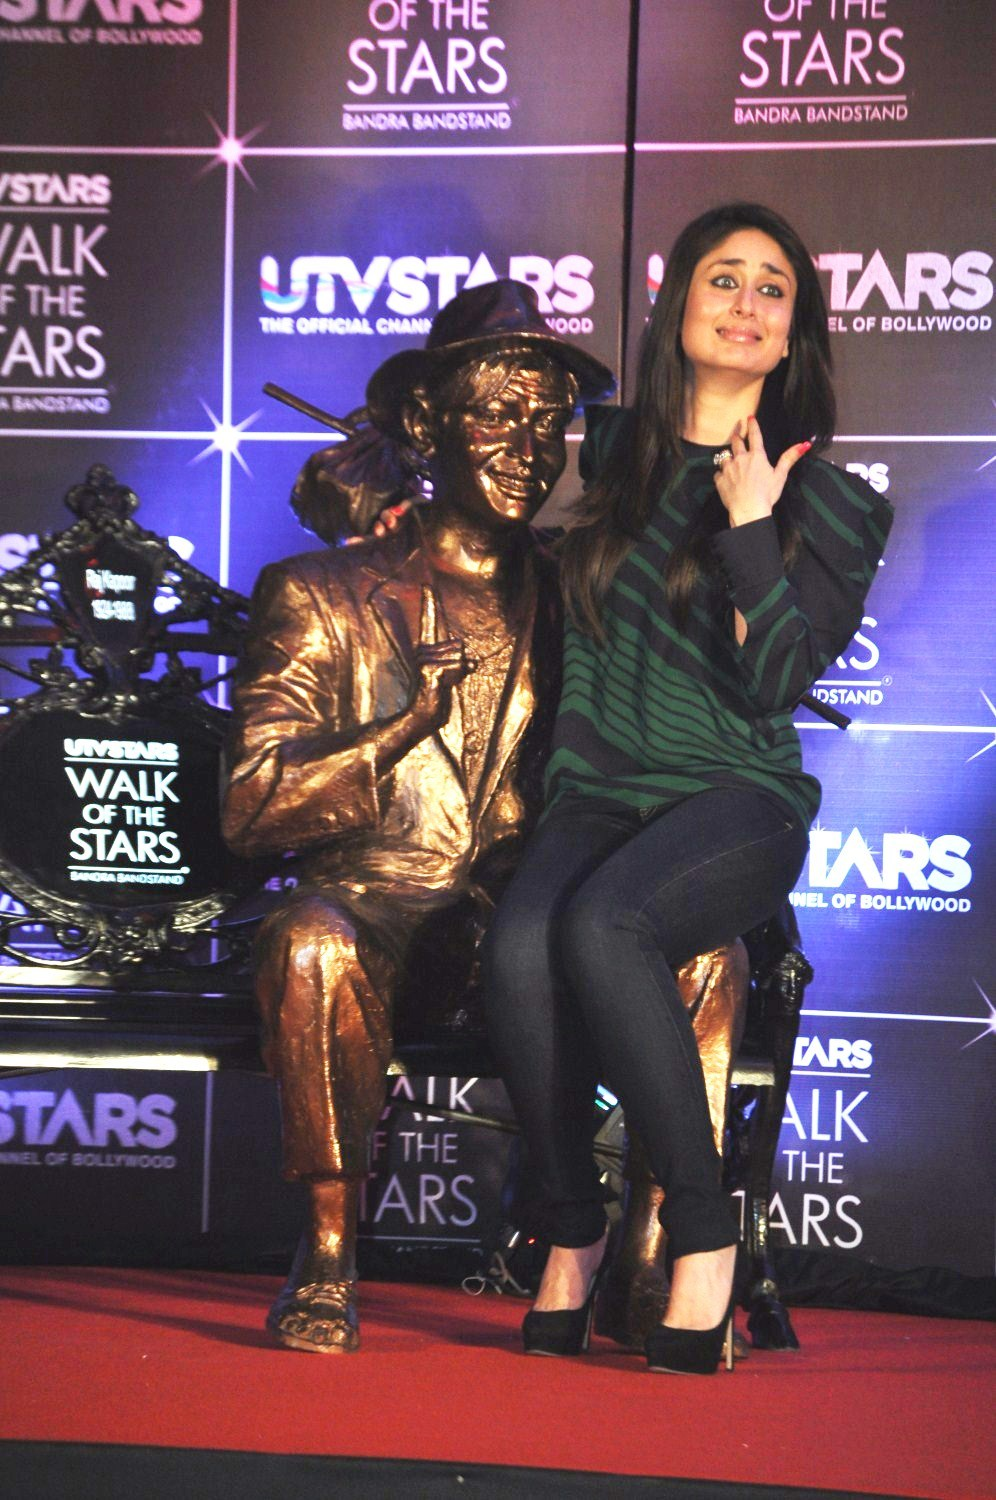 Kareena Kapoor sitting in the lap of the statue of her ...